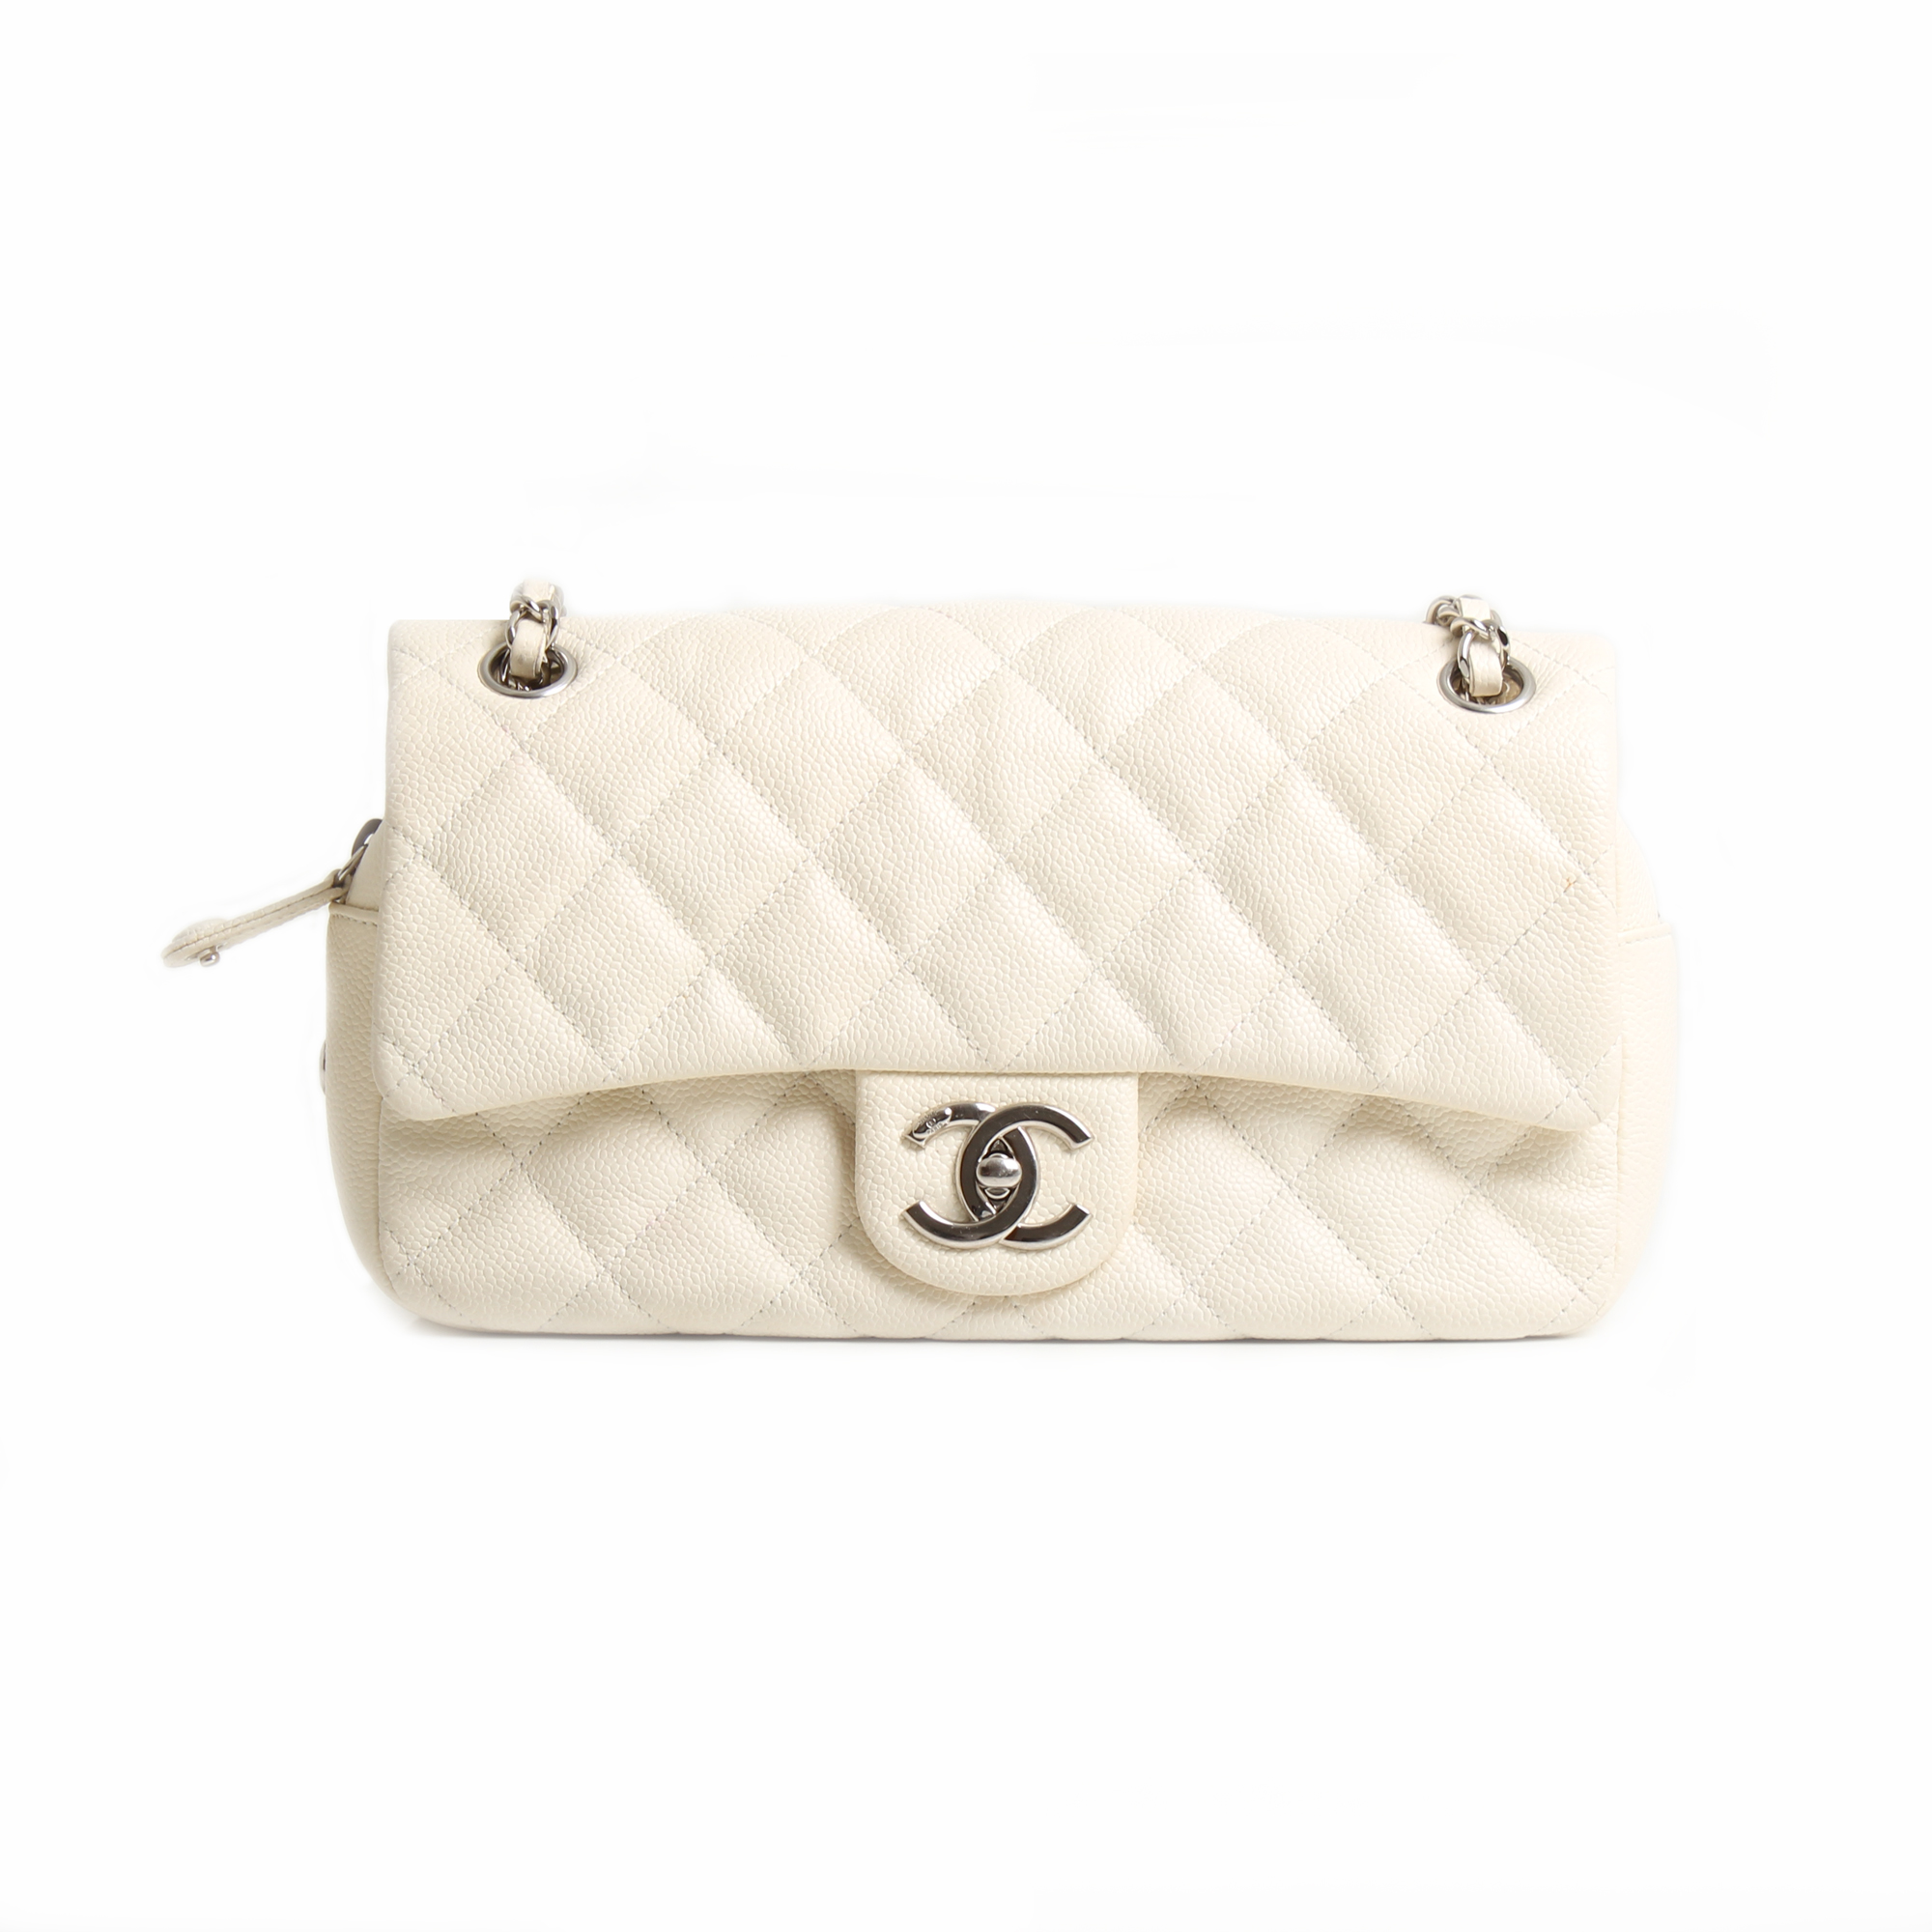 chanel easy zip medium bag white caviar leather front